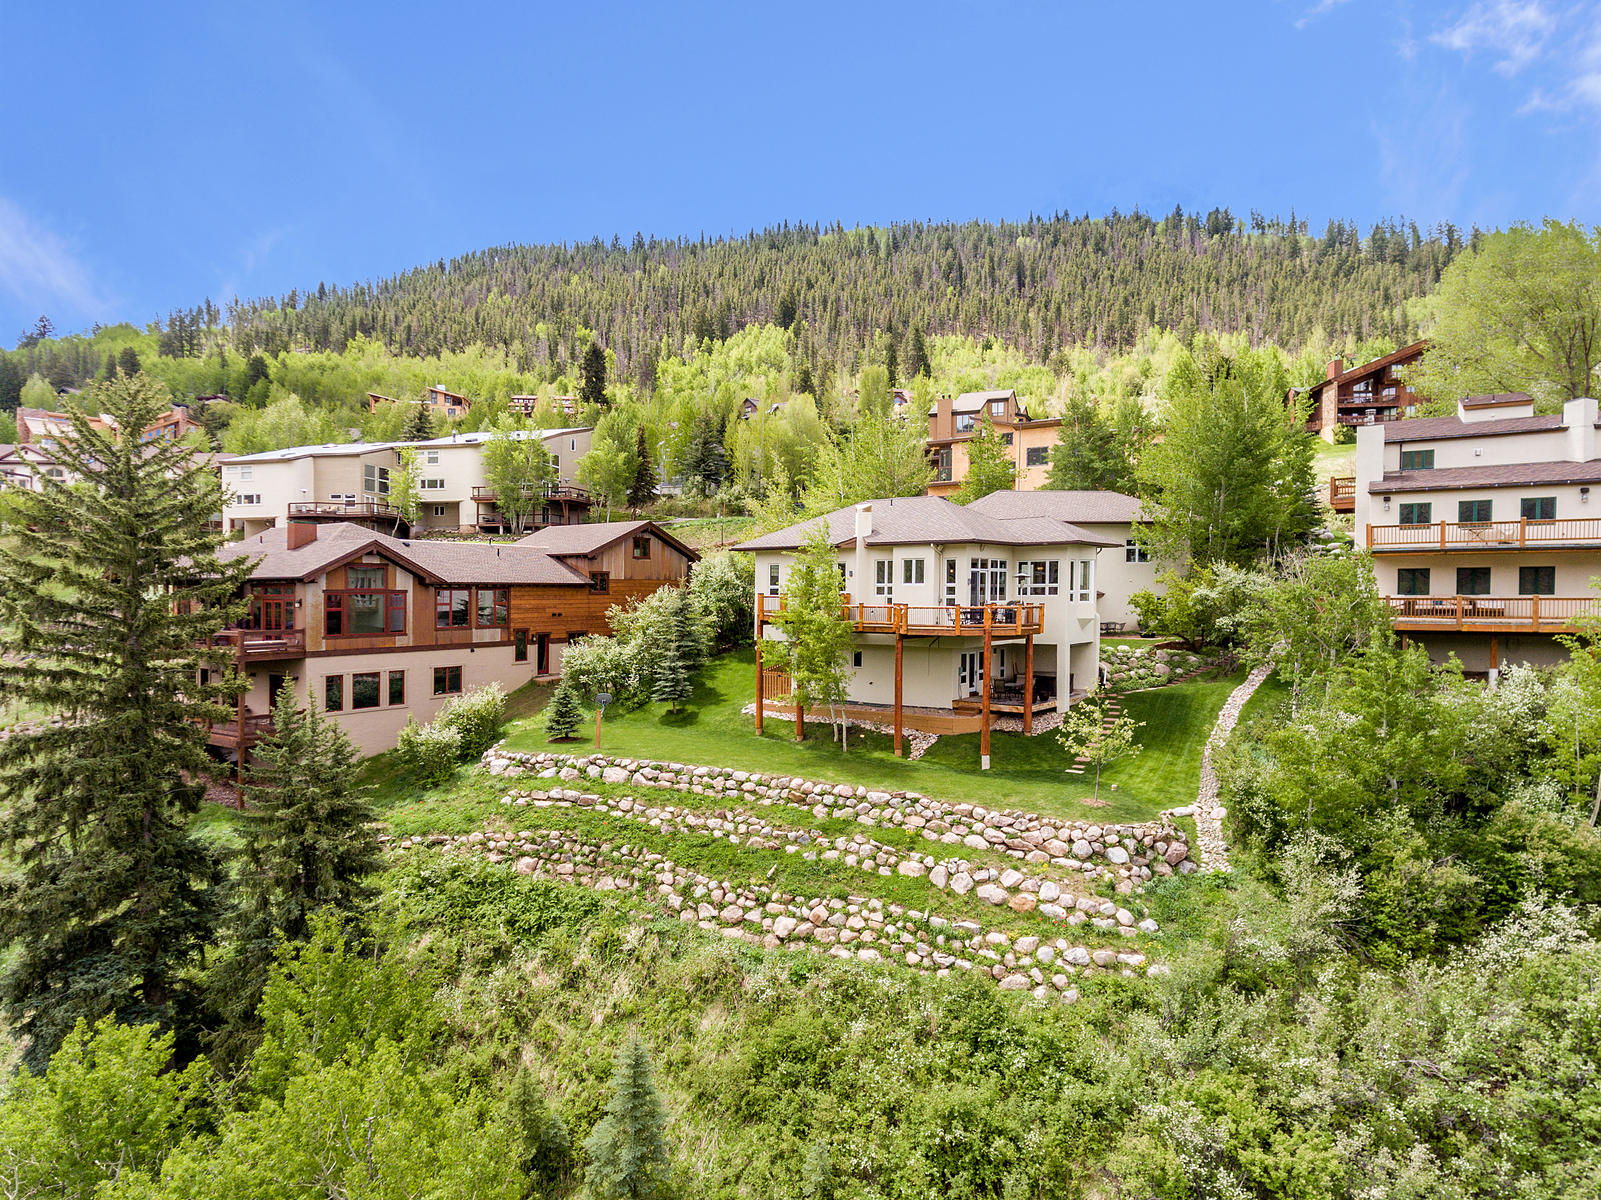 Single Family Home for Sale at Prestigious Whiskey Hill home with views of Castle Peak 205 Daisy Lane Avon, Colorado, 81620 United States